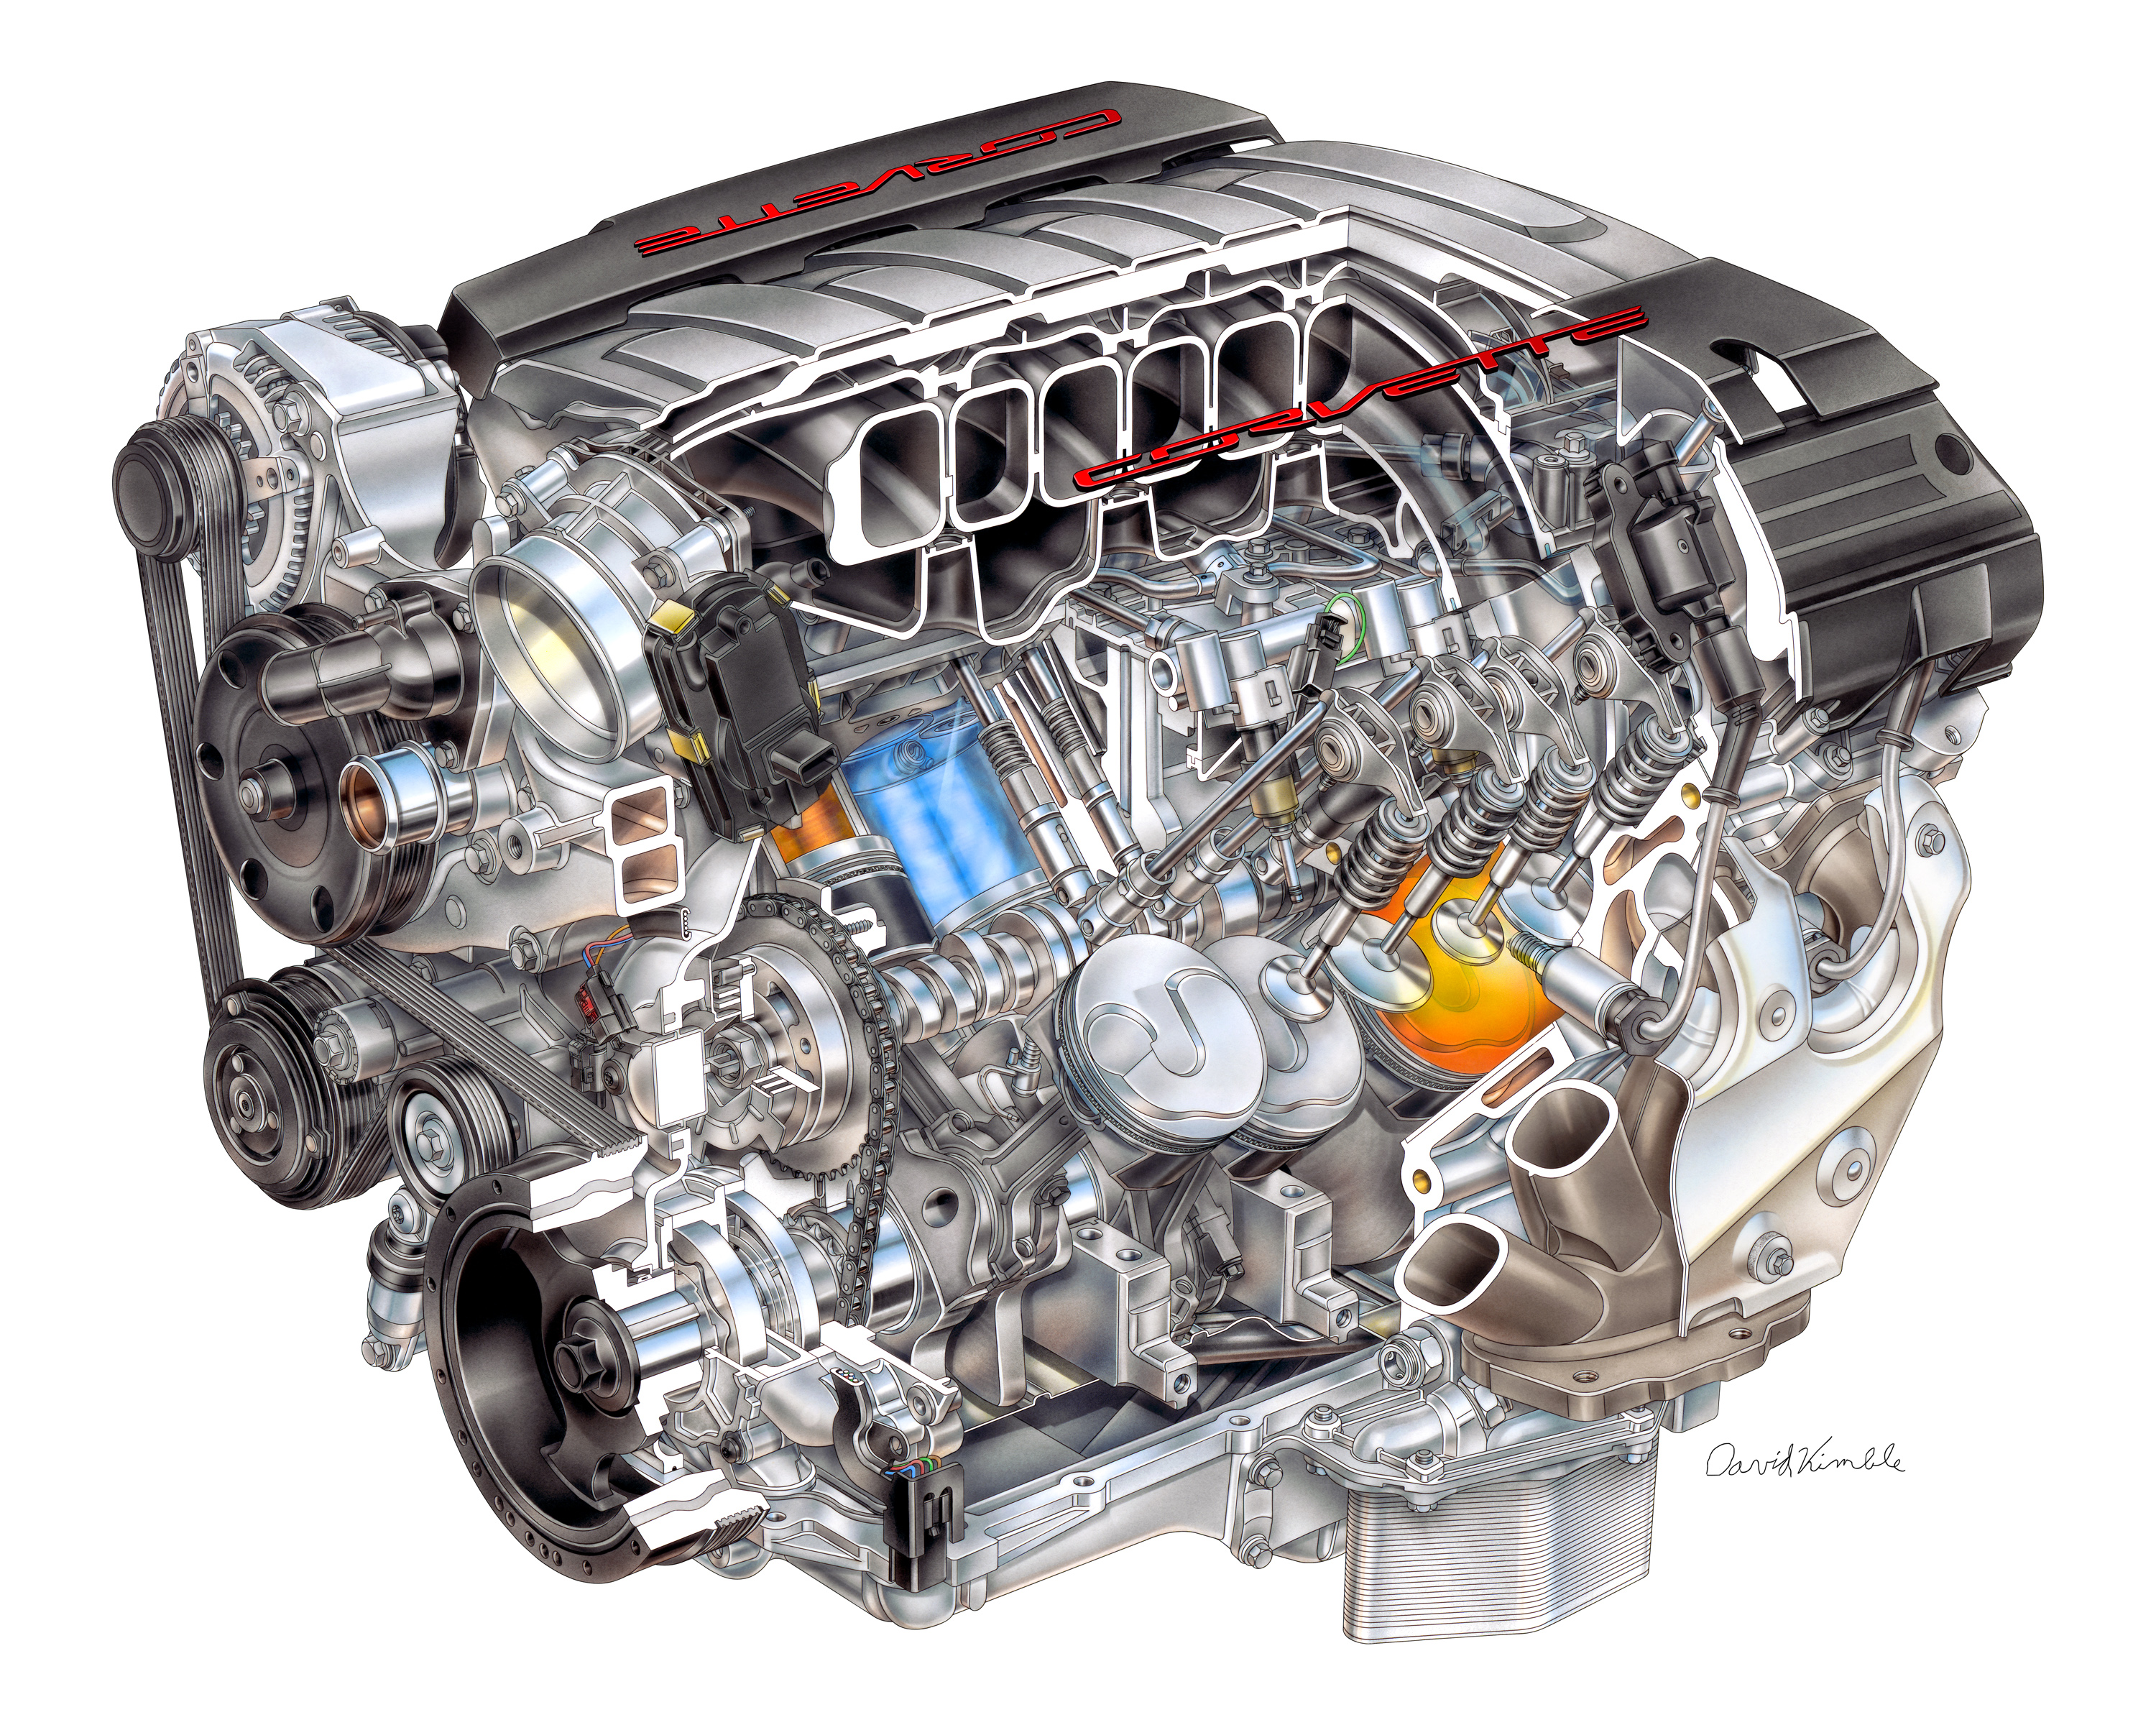 Chevrolet Introduces The All New Lt1 V8 Engine For C7 Corvette 2011 Subaru Legacy Fuse Diagram Top Speed